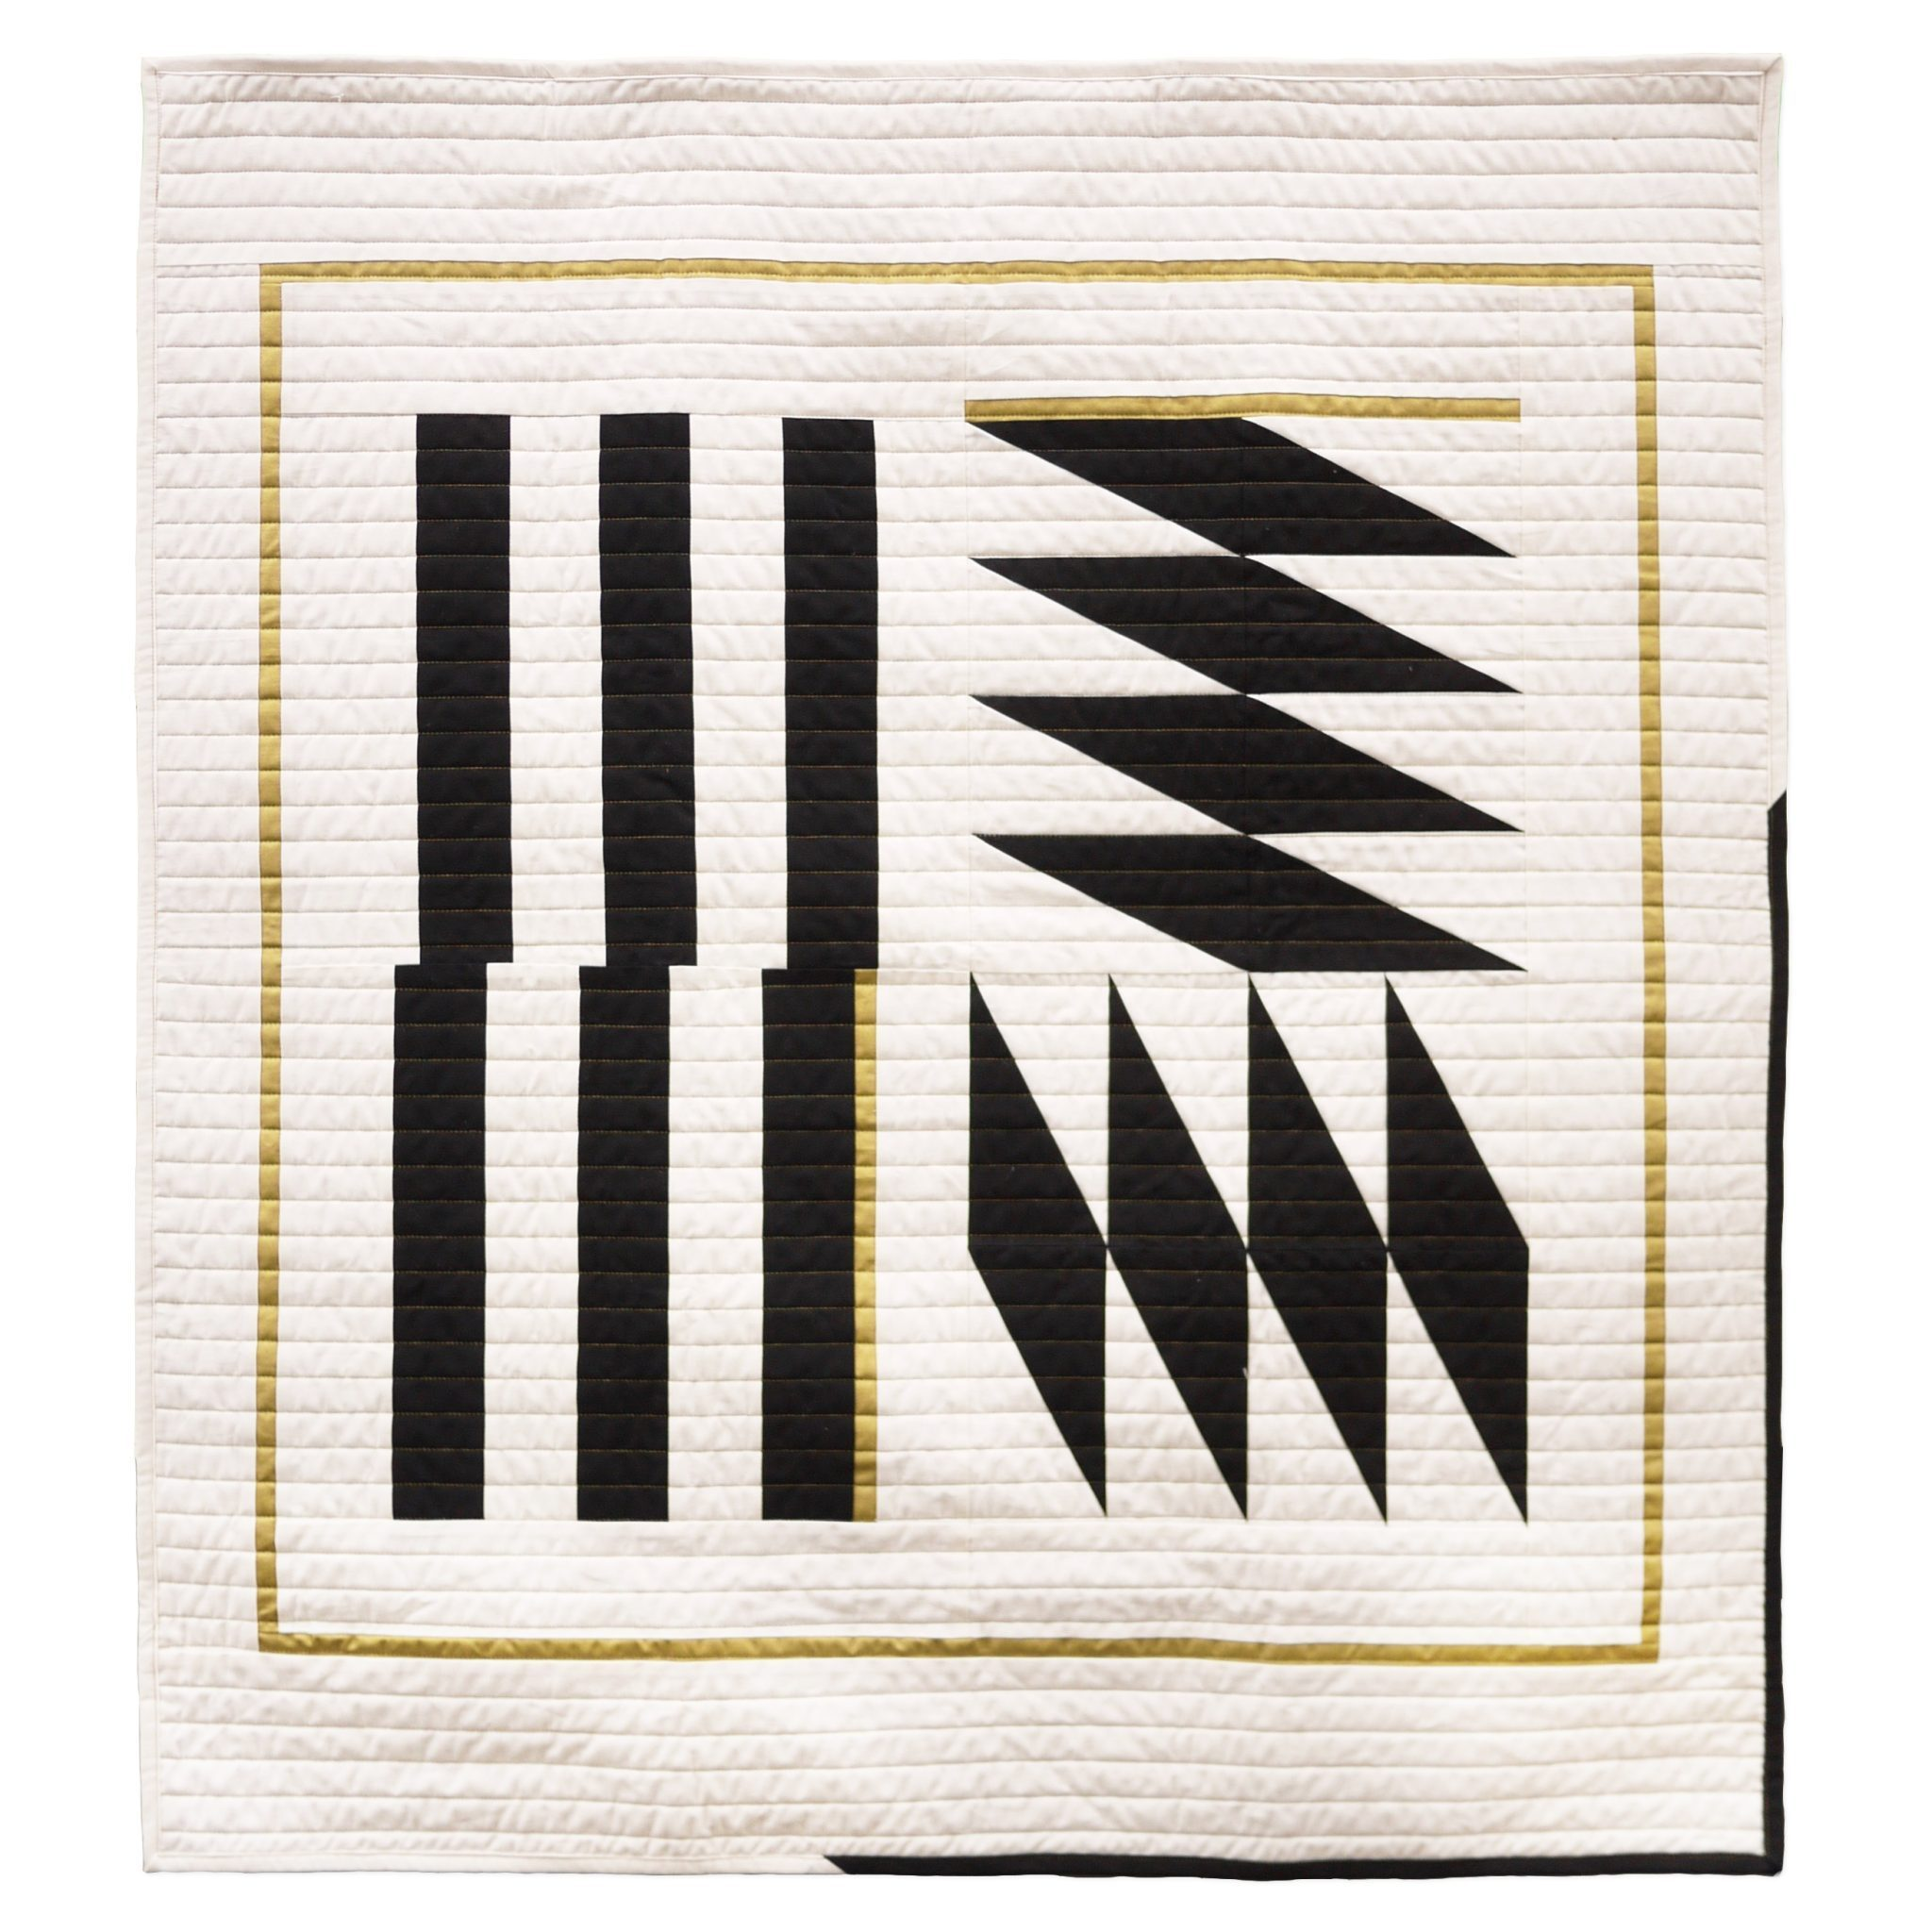 "<b>Inlay, Black - Baby Size</b><br>36"" x 40""<br>Cotton, cotton batting<br><a href=""https://3rdstoryworkshop.com/product/inlay-collection-wall-hanging-crib-quilt-black"" target=""_blank"" rel=""noopener noreferrer"">PURCHASE</a>"